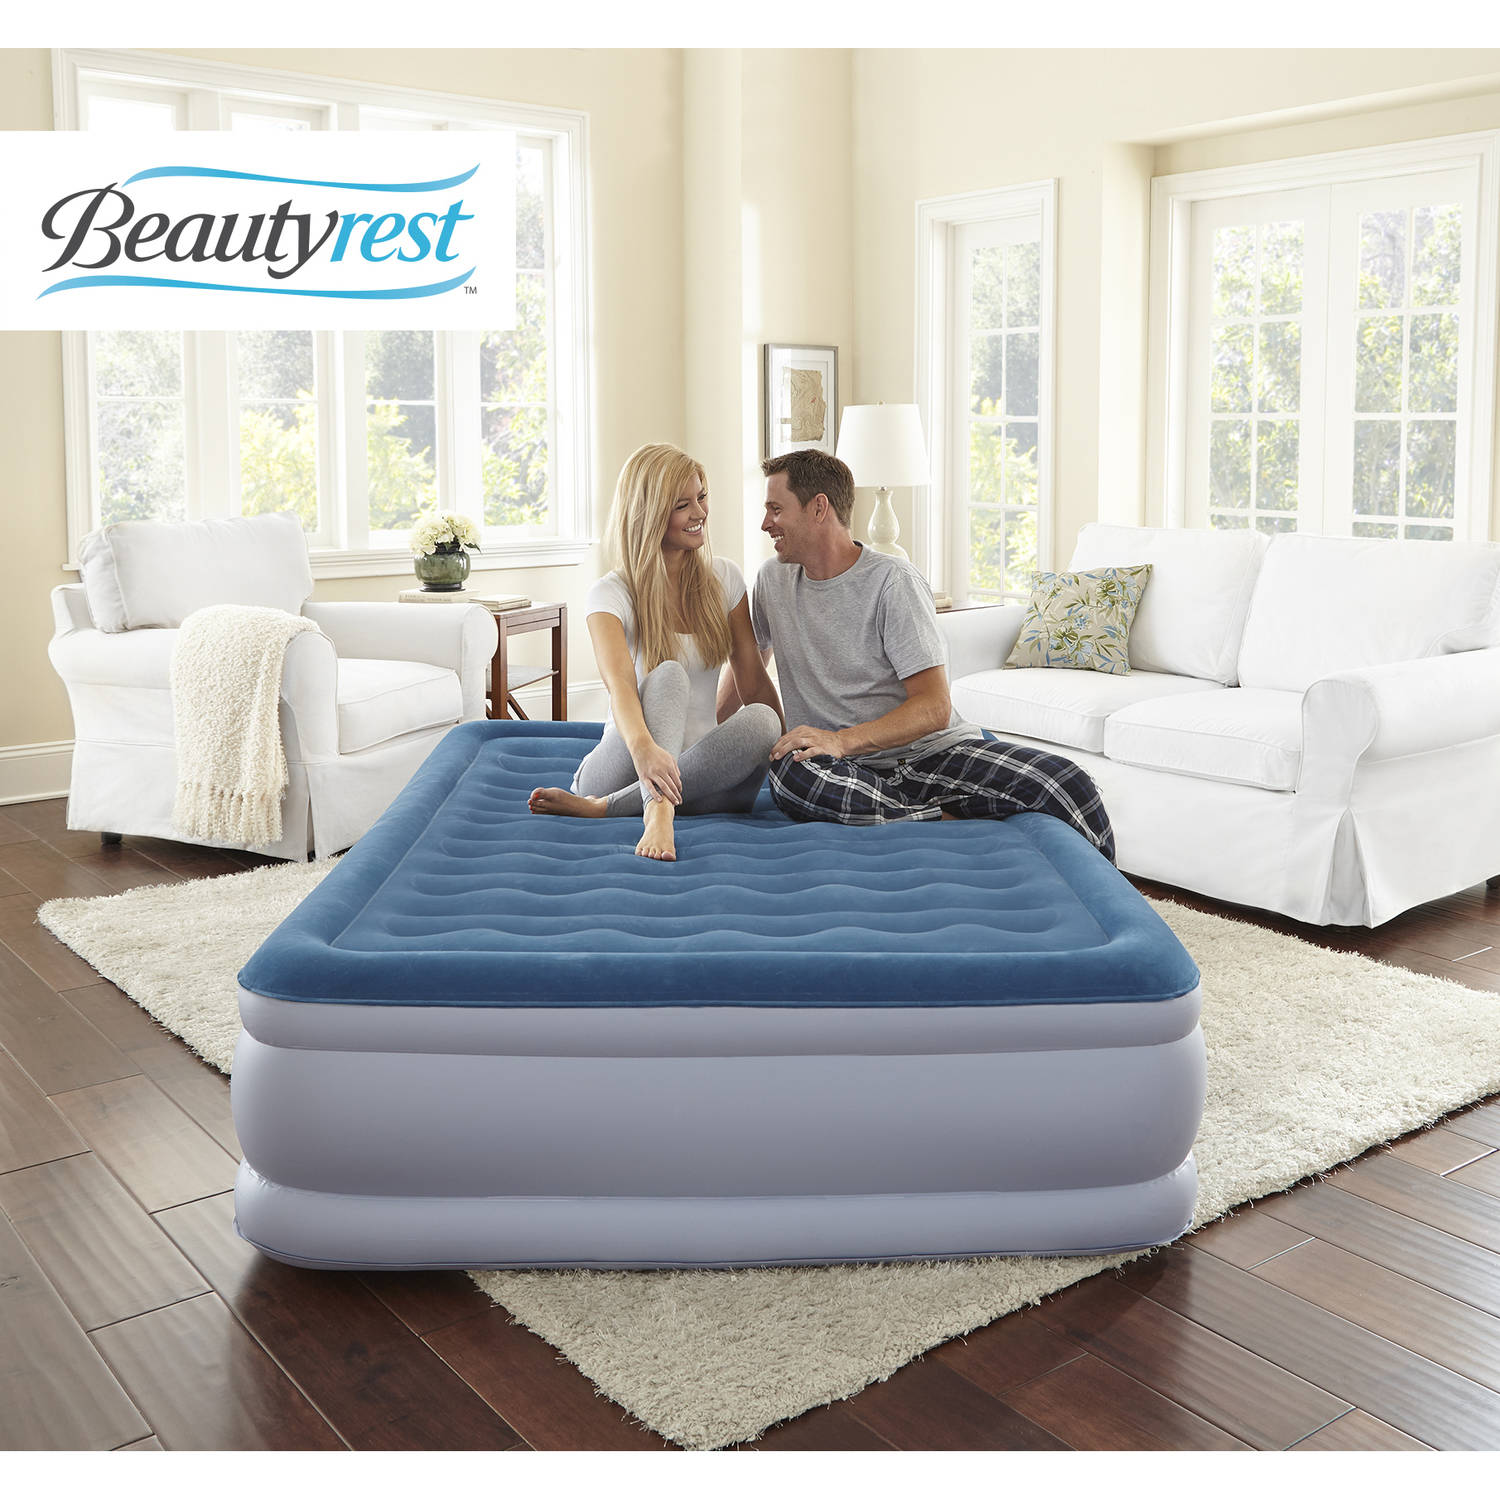 simmons beautyrest extraordinaire raised air bed mattress with iflex support and built in pump multiple sizes walmartcom